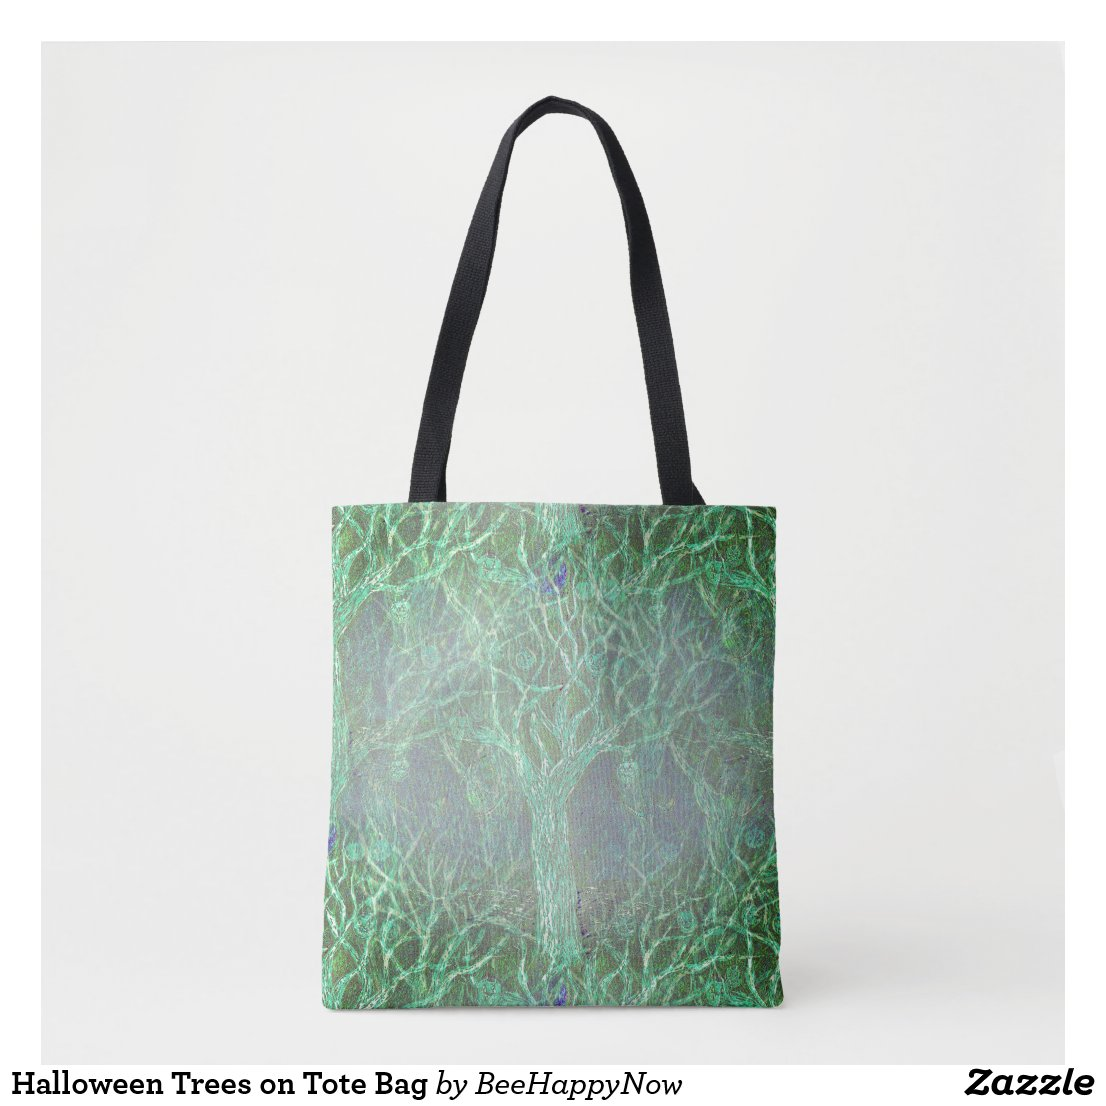 Halloween Trees on Tote Bag